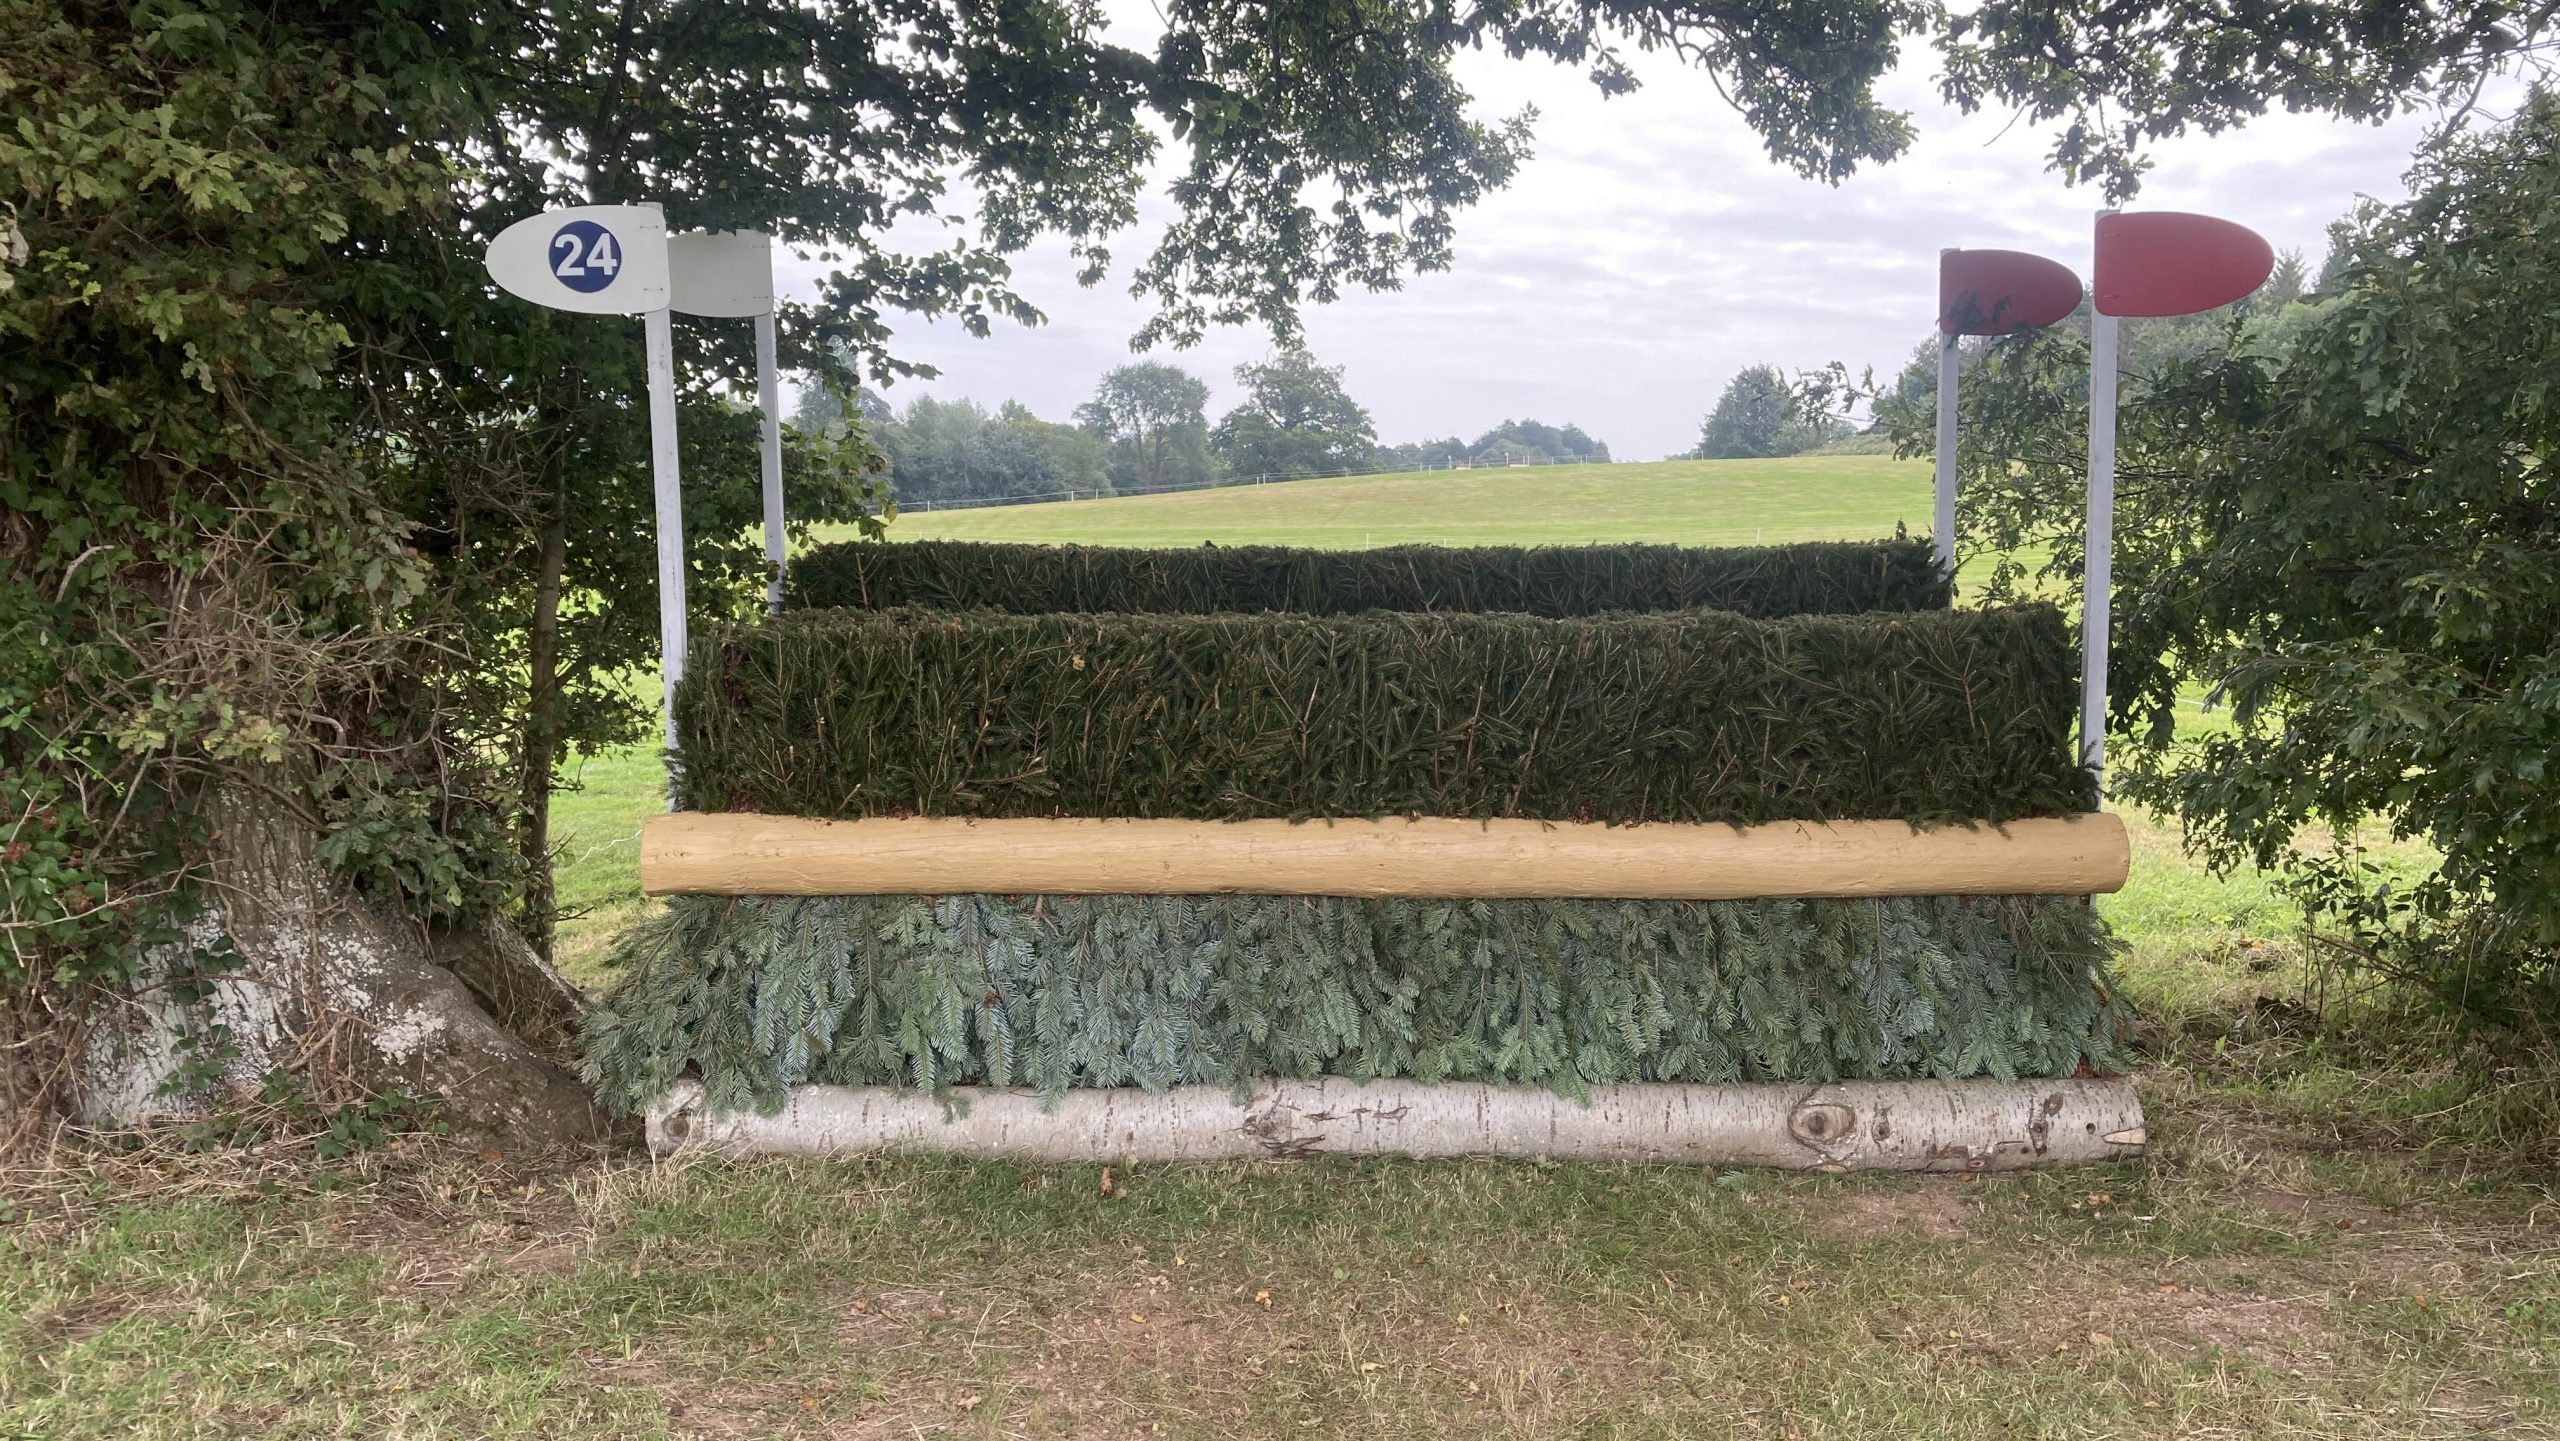 Bicton Horse Trials cross-country course: five-star fence 24